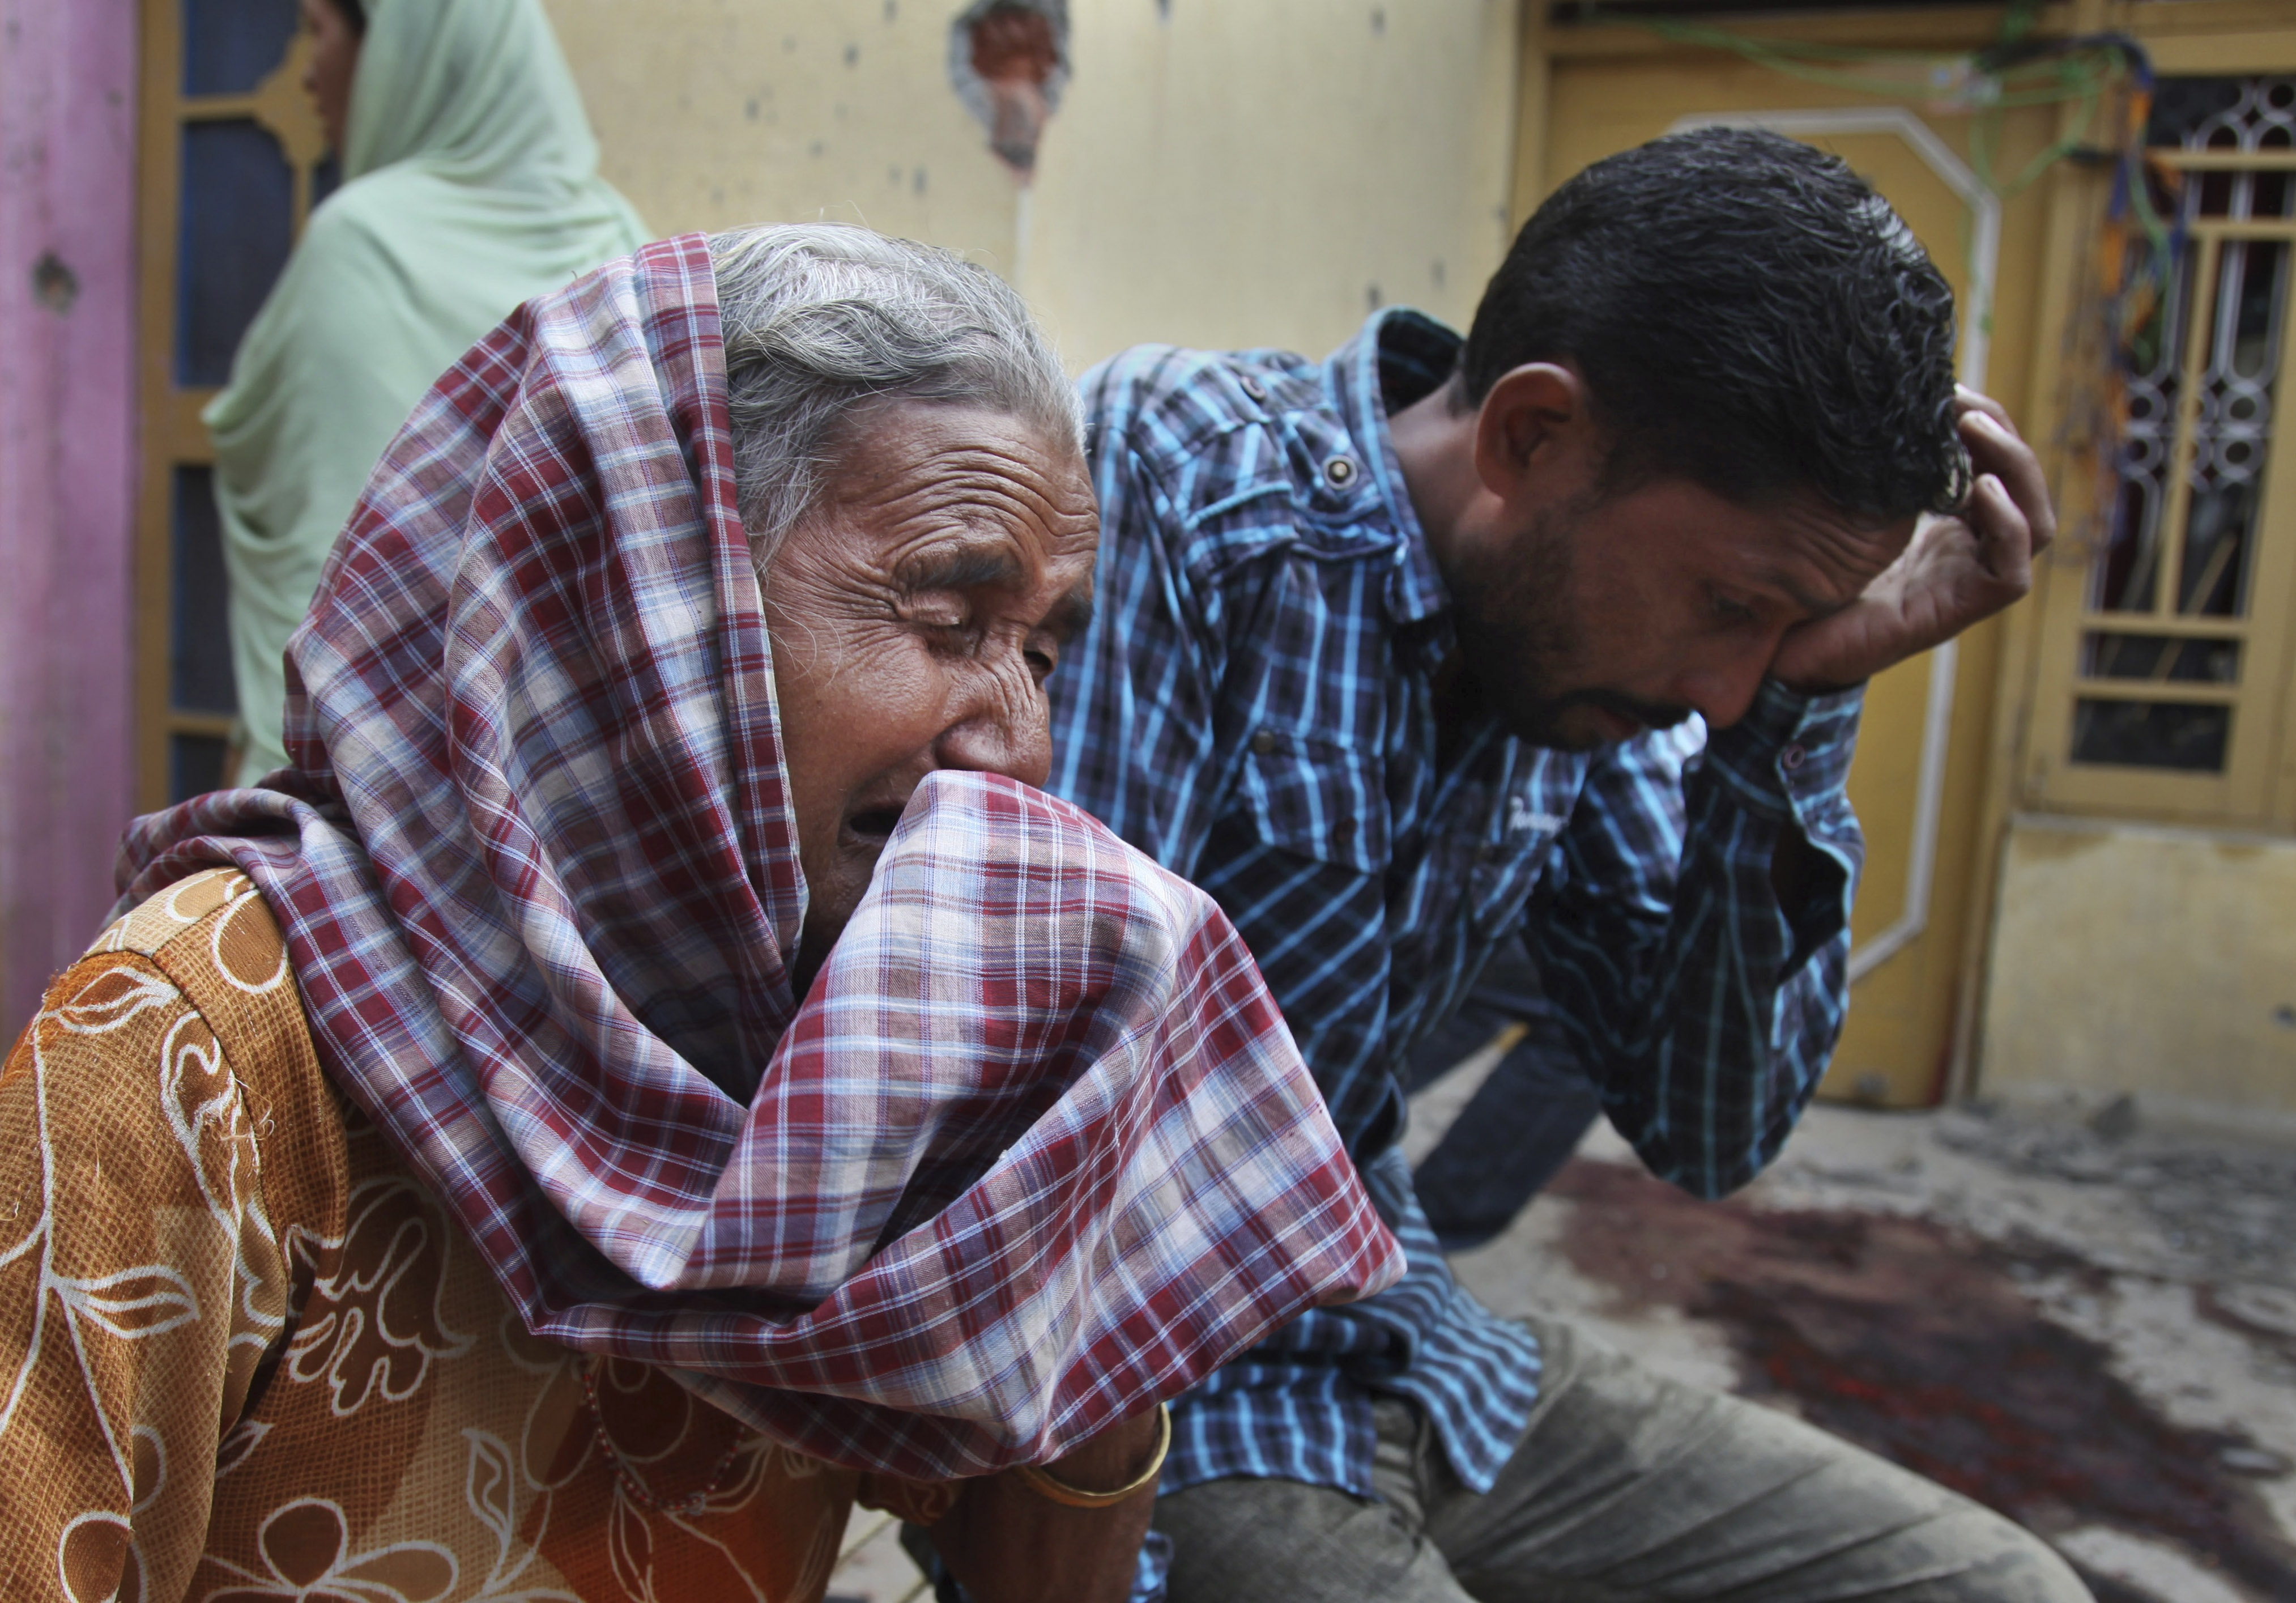 Relatives of Rajesh Kumar, who was killed in mortar shell firing allegedly from Pakistan's side, weep inside their house at Masha Da Kothe village, near the India-Pakistan border, about 30 miles from Jammu, India, on Oct. 6, 2014